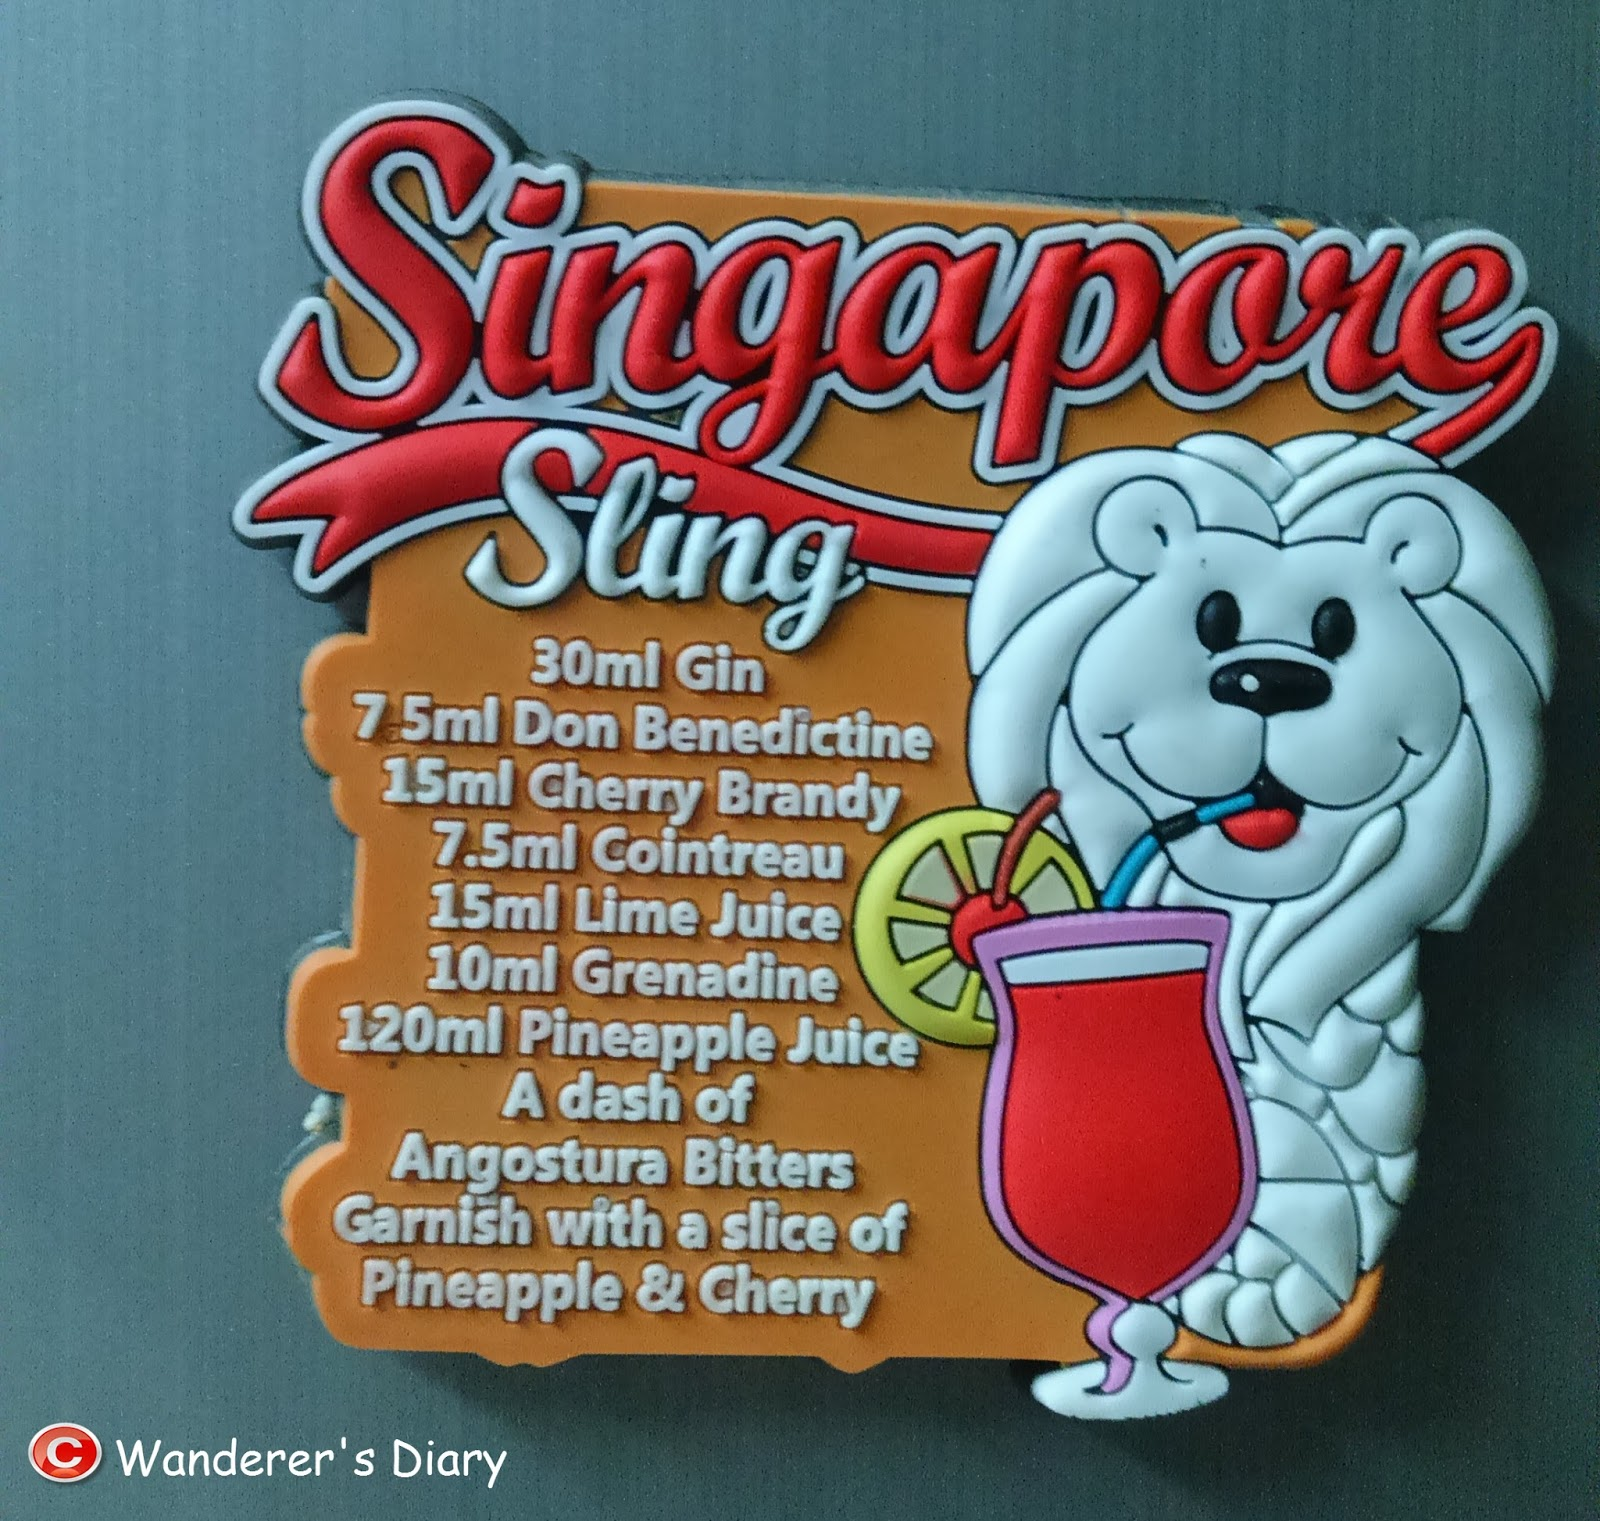 Singapore Sling (Its also a Singaporean national drink) Recipe